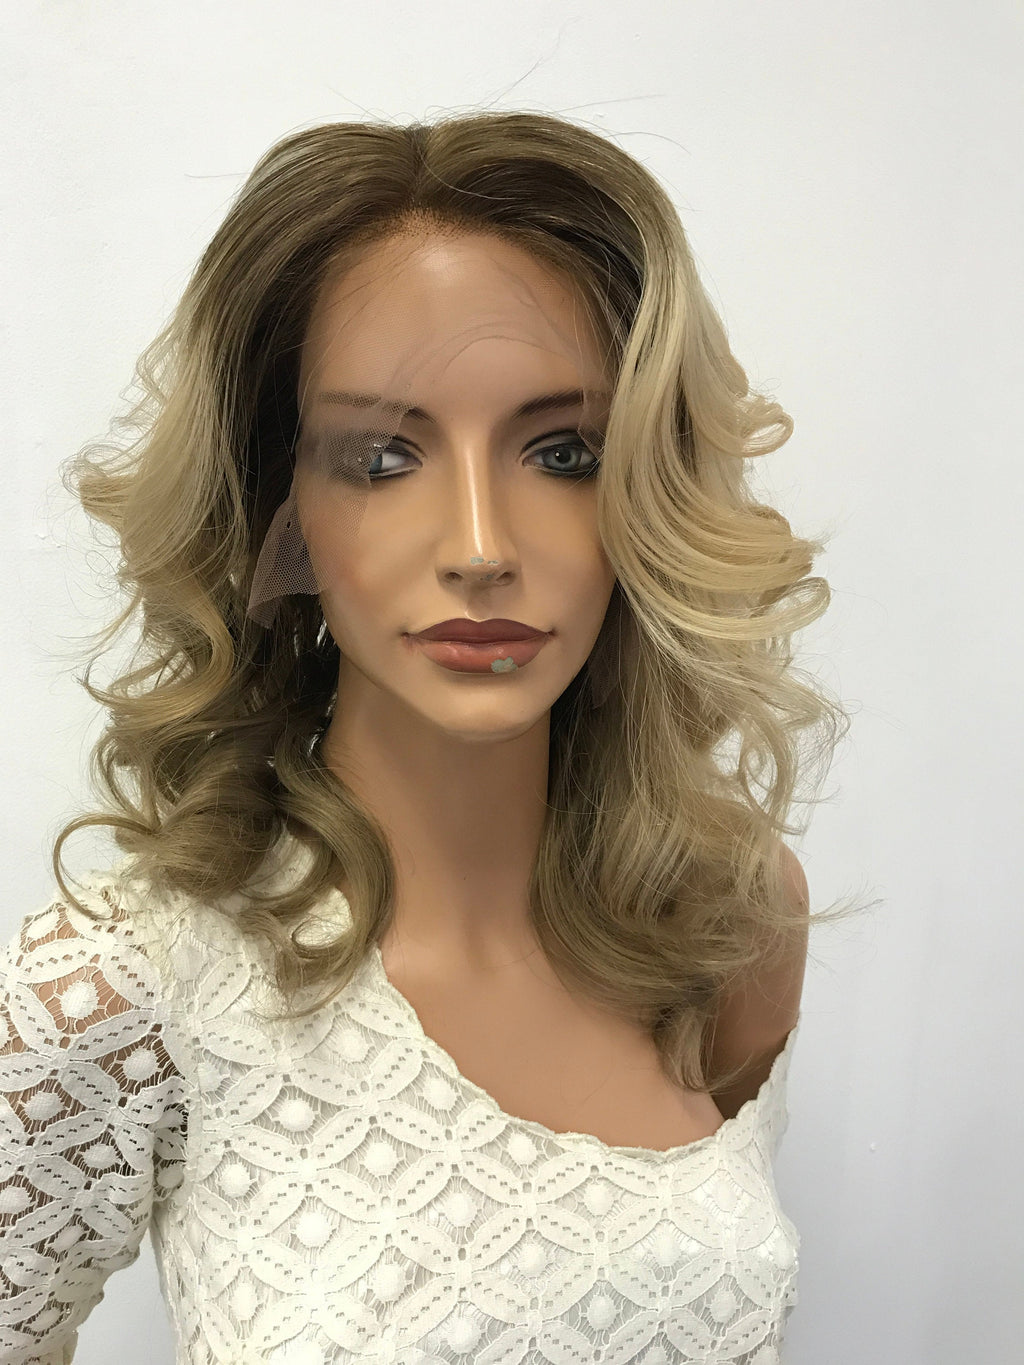 HUMAN HAIR Full lace Wig, Balayage blonde with root, Loose Curl hair, Made with Virgin hair